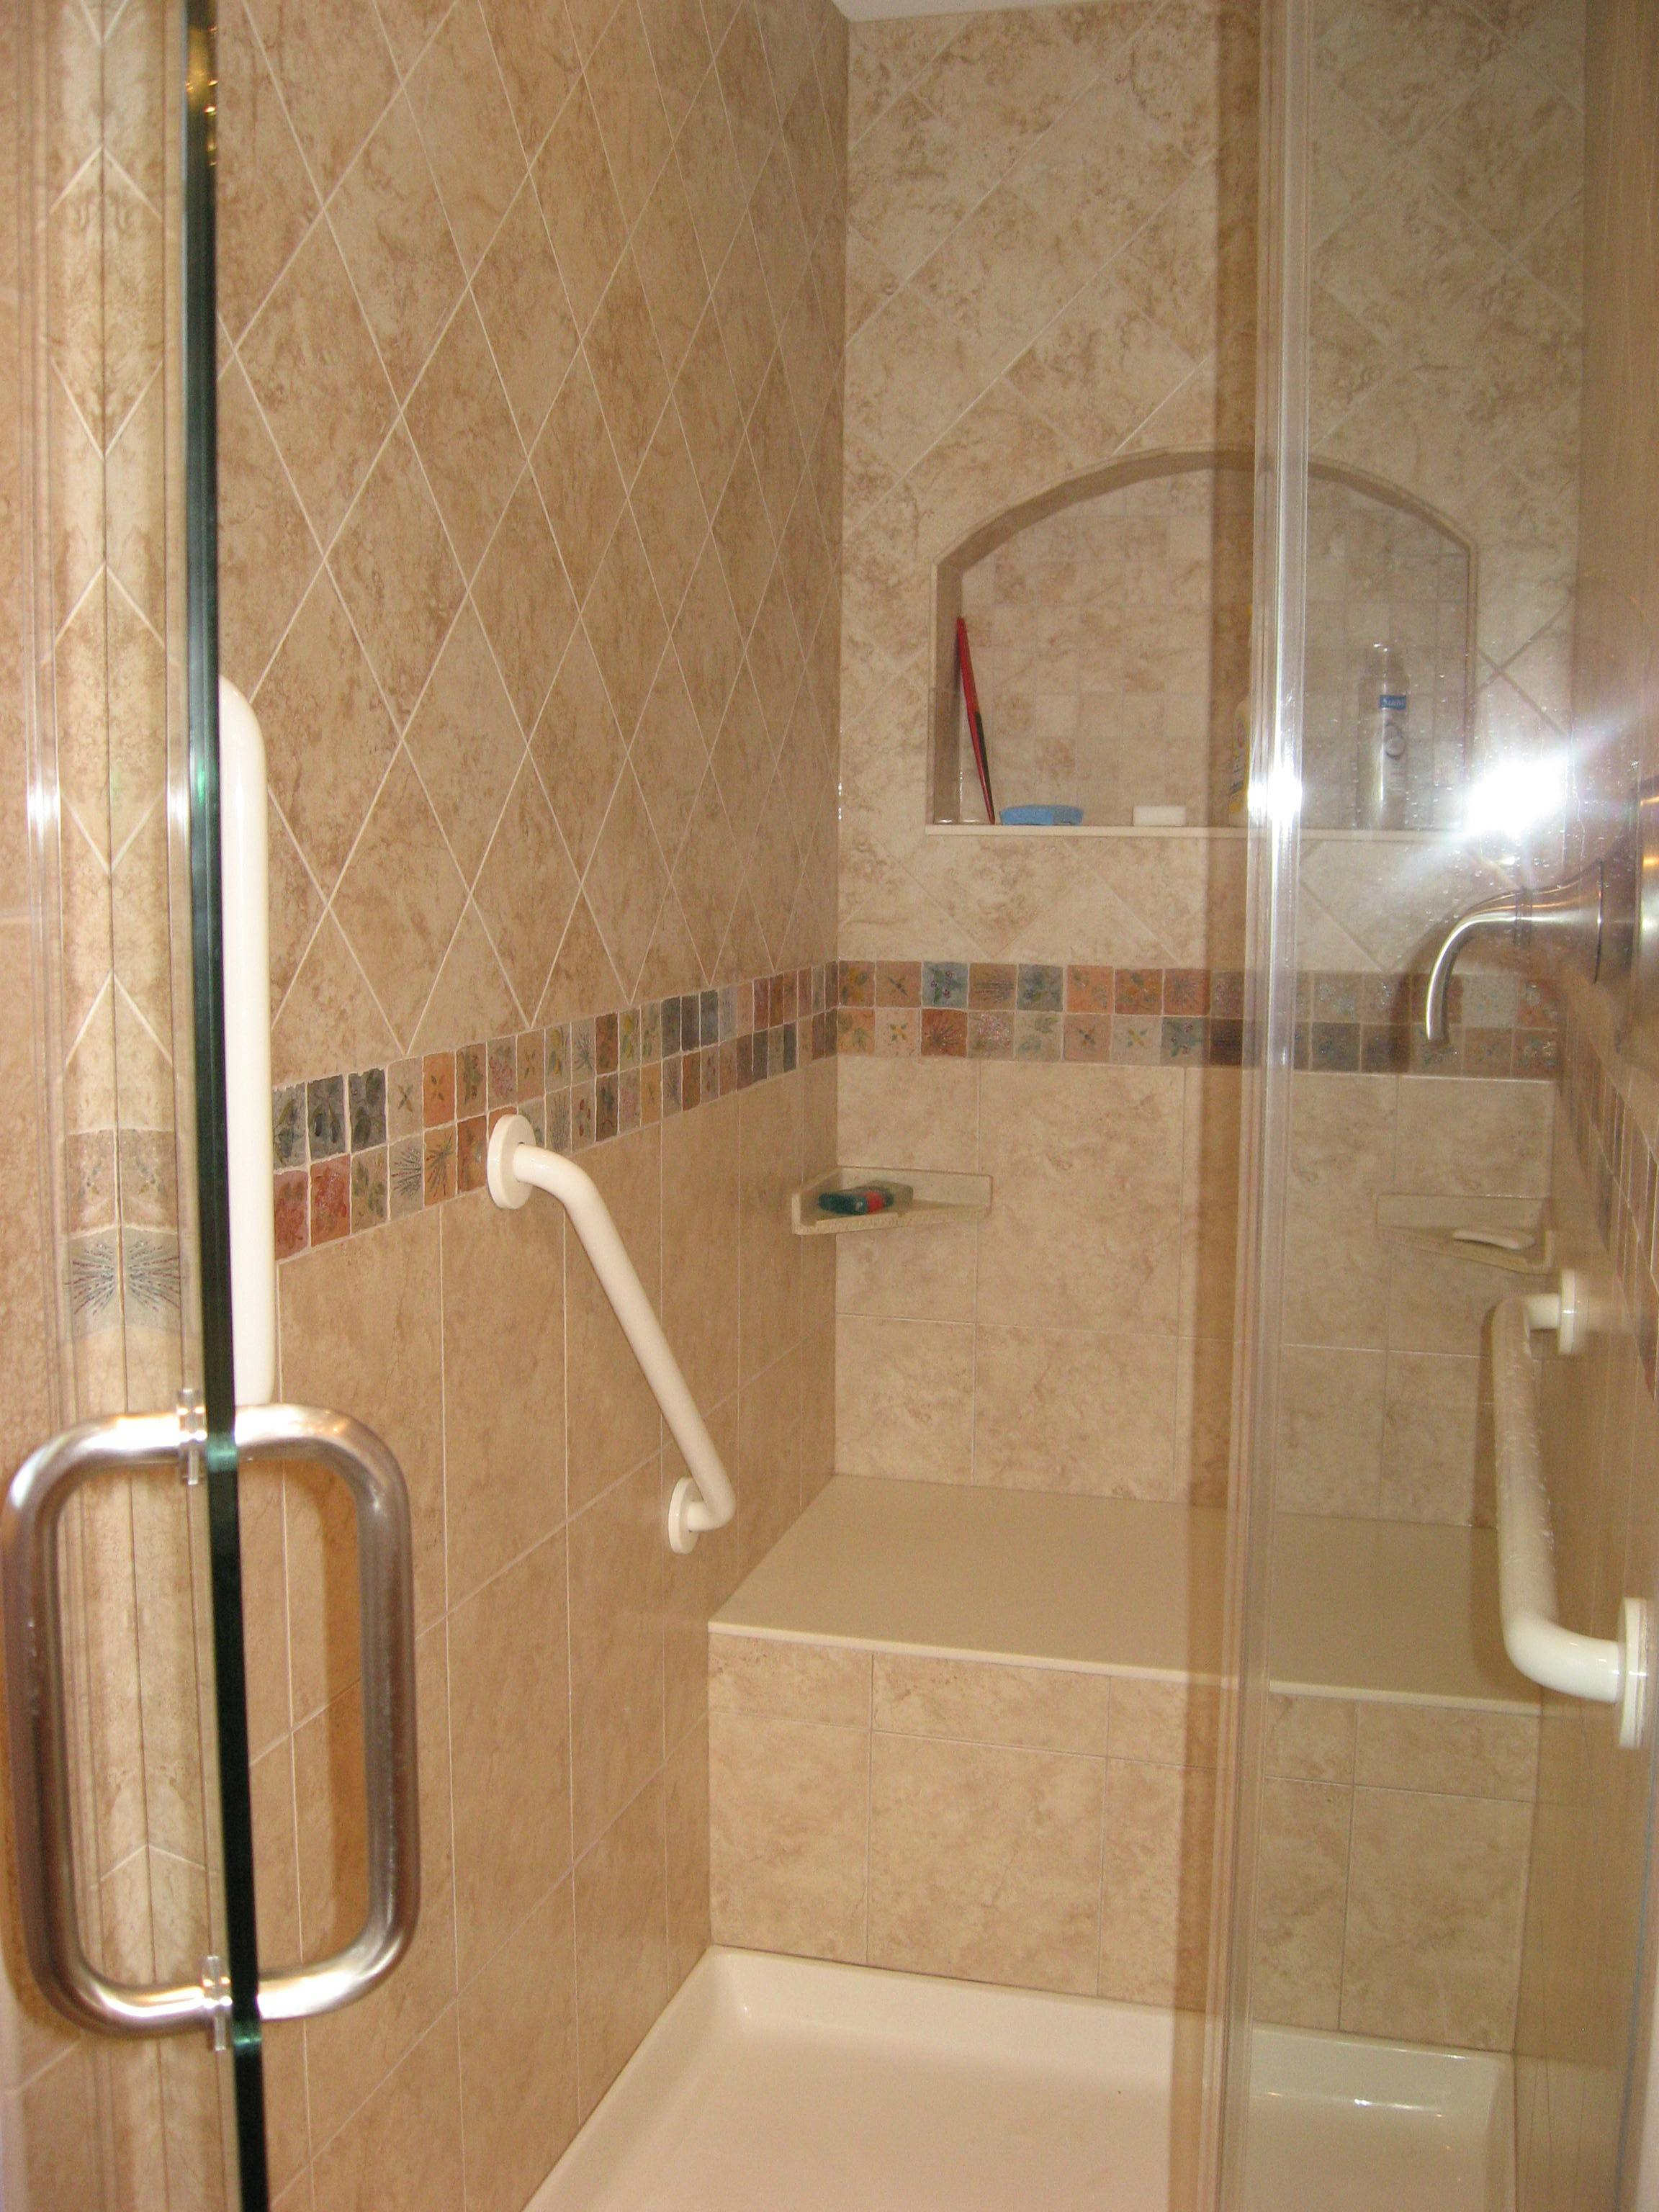 Putting grab bars inside and next to the tub or shower and next to the toilet can help prevent falls.